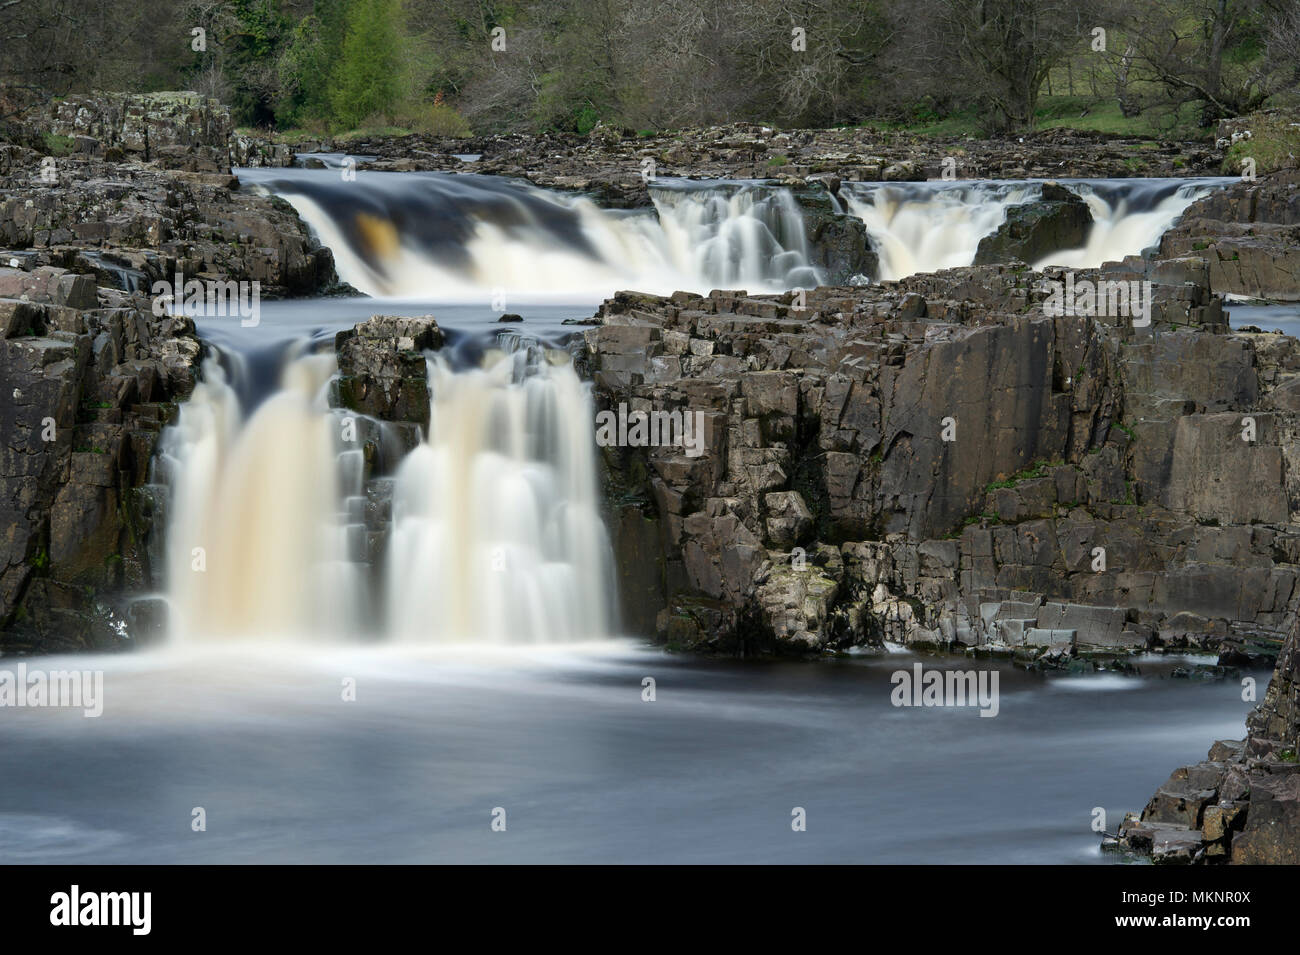 A long exposure image of Low Force Waterfalls in Teesdale, North Pennines AONB Stock Photo